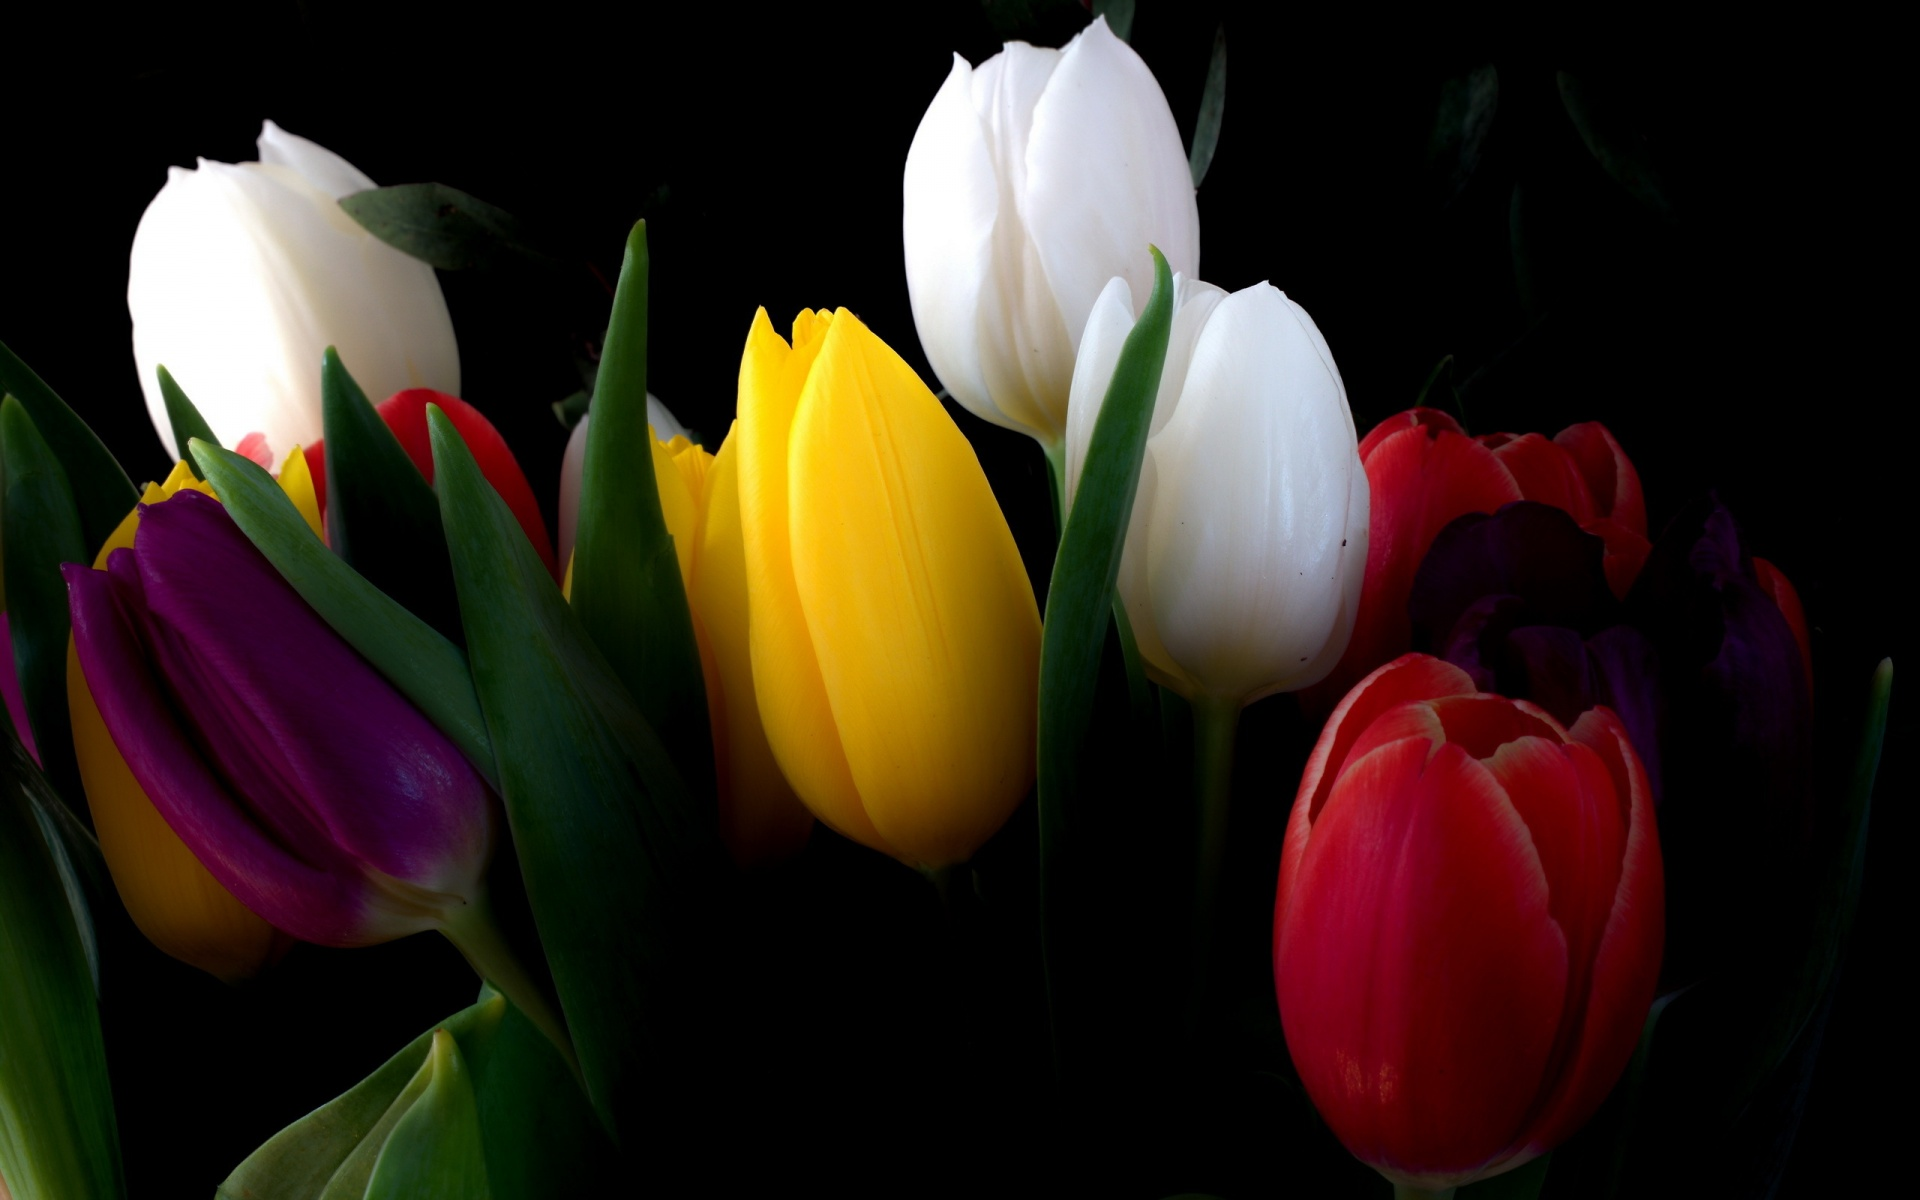 Tulips Flowers Bouquet With Black Background | 1920 x 1200 | Download ...